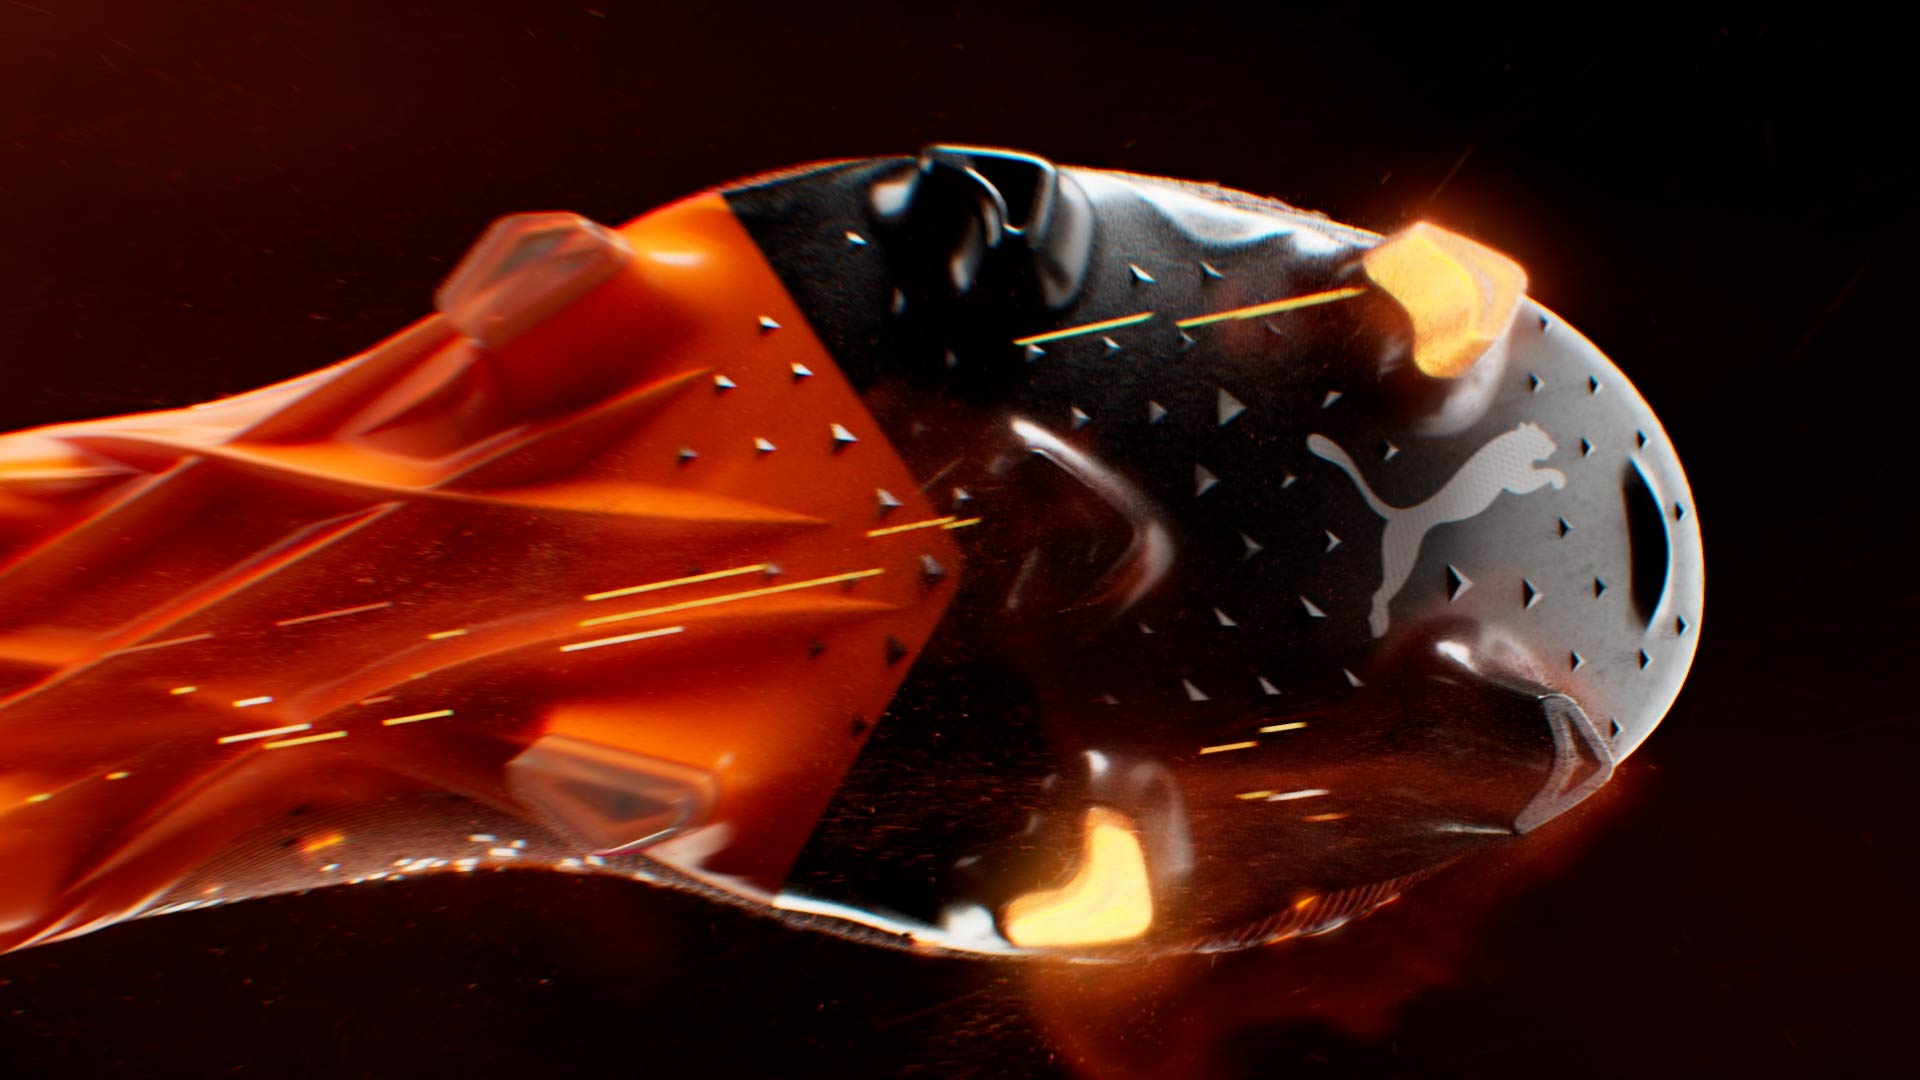 3D animation of the soccer shoe sole with luminescent crampons and particles